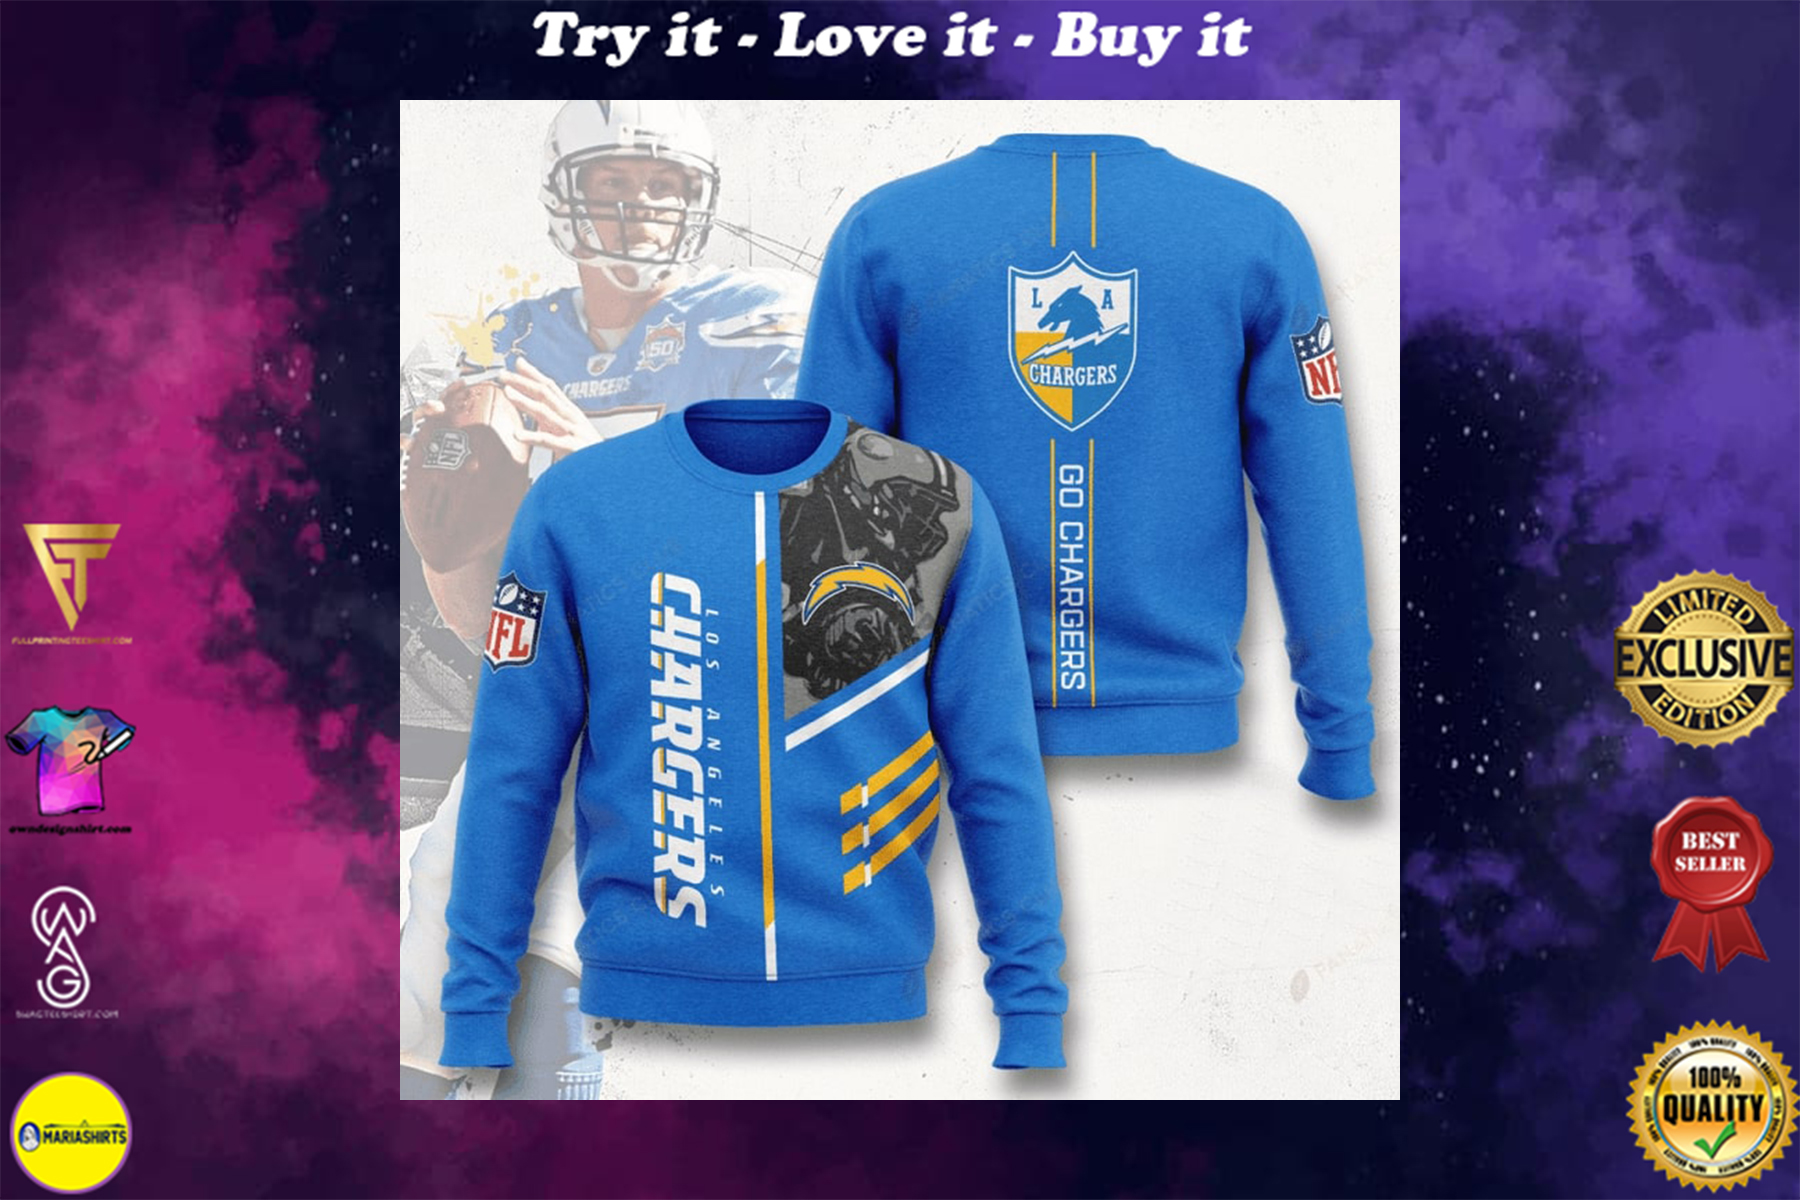 [highest selling] los angeles chargers go chargers full printing ugly sweater - maria